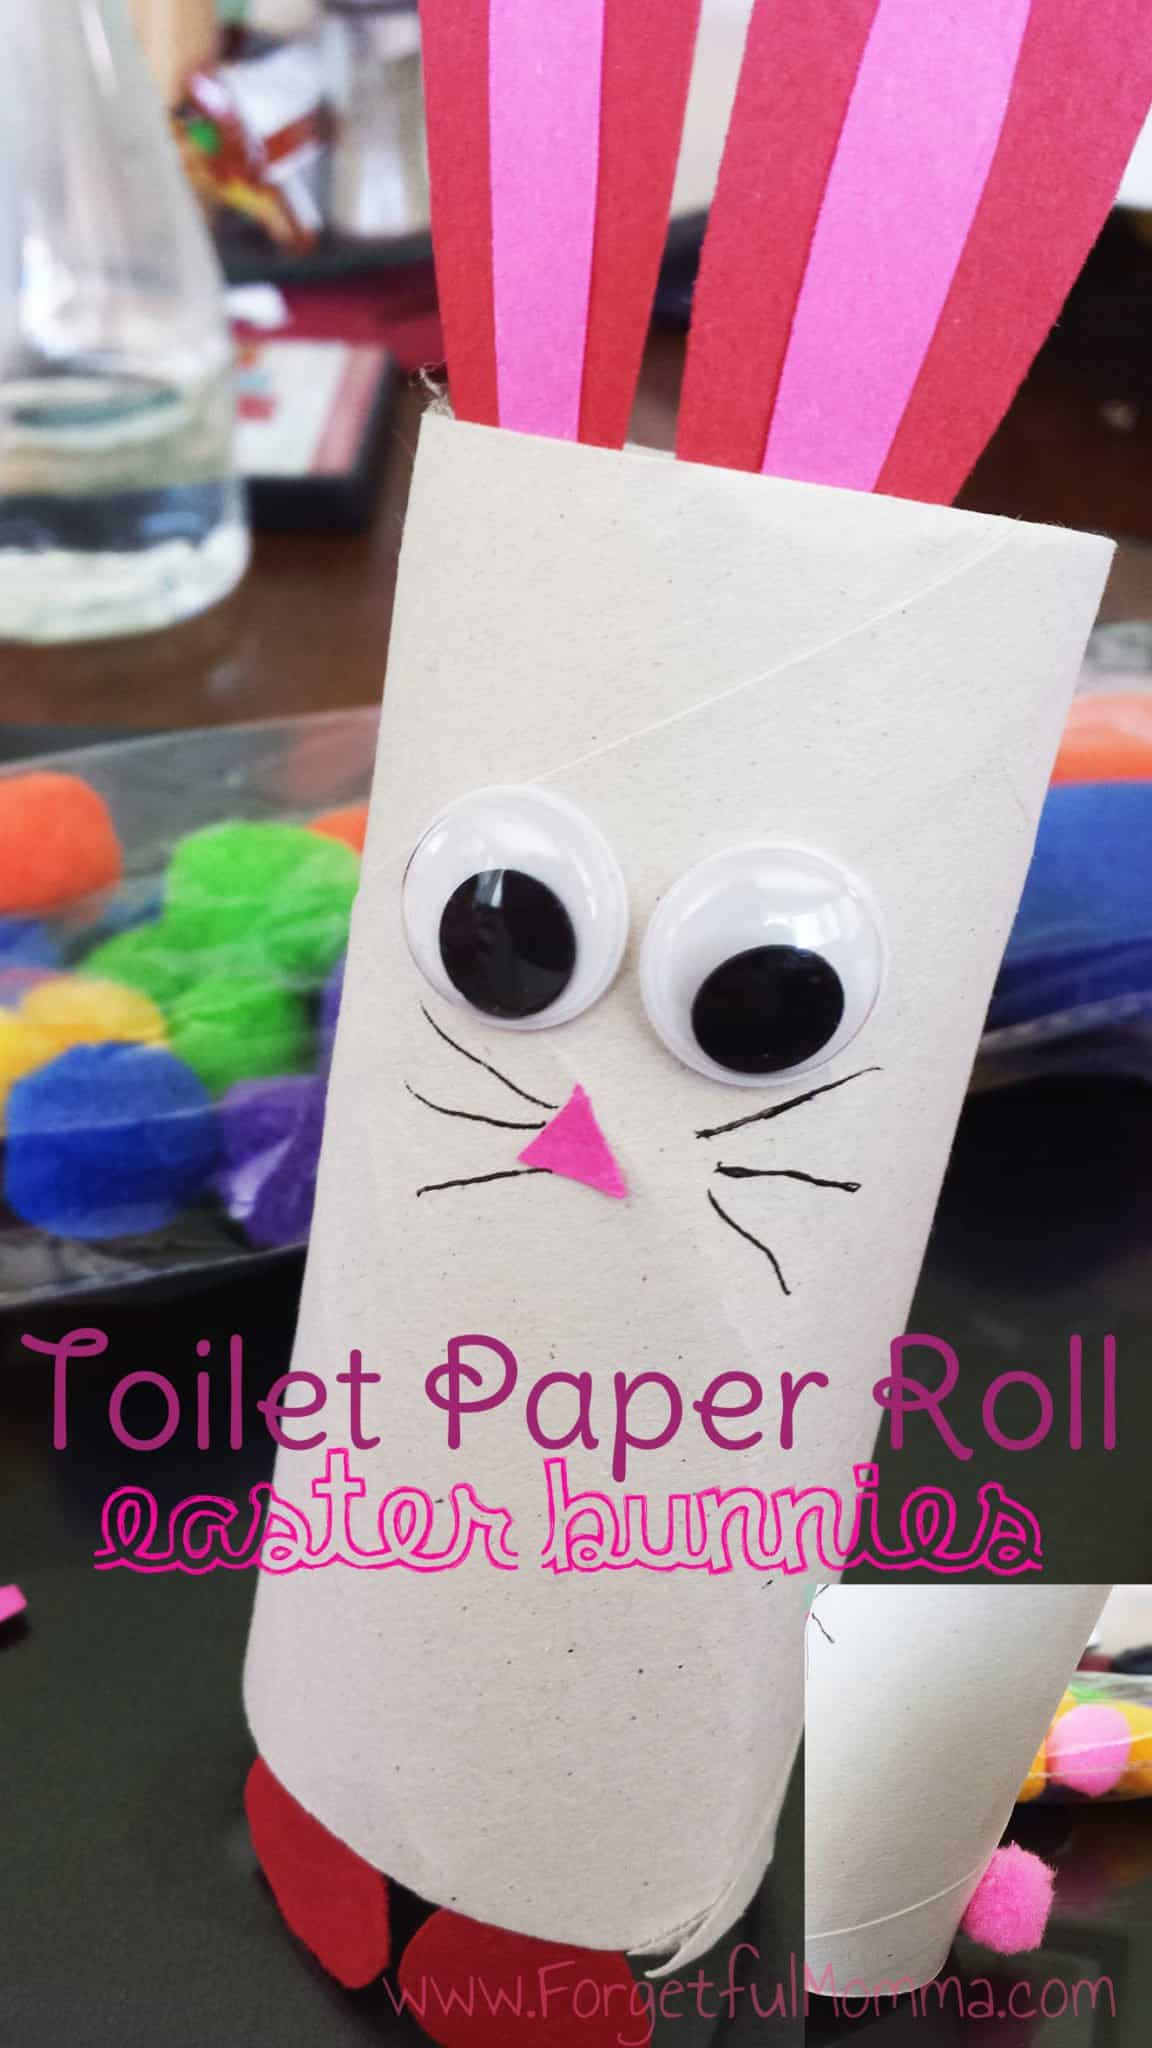 Toilet Paper Roll Easter Bunnies